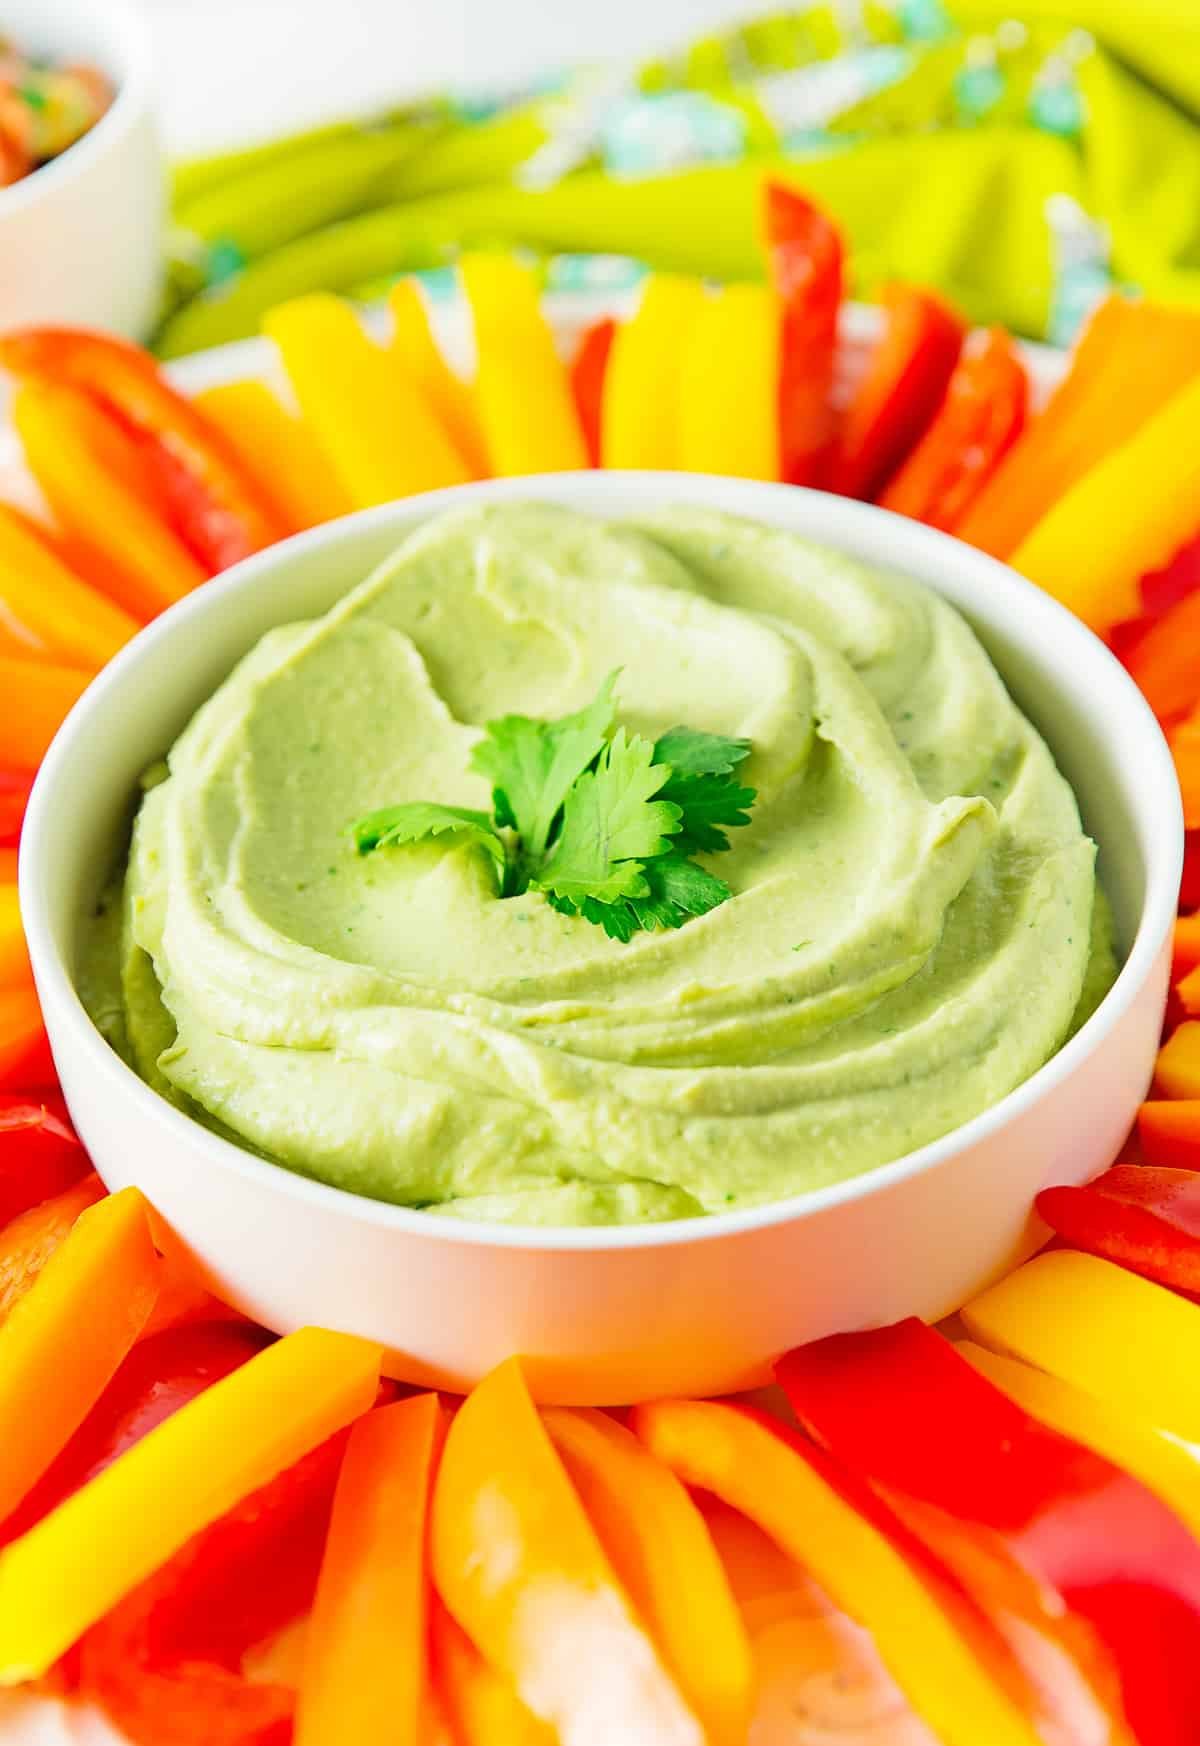 Avocado Hummus, vegan, vegetarian, whole food plant based, gluten free, recipe, wfpb, healthy, oil free, no refined sugar, no oil, refined sugar free, dinner, side, side dish, dairy free, dinner party, entertaining